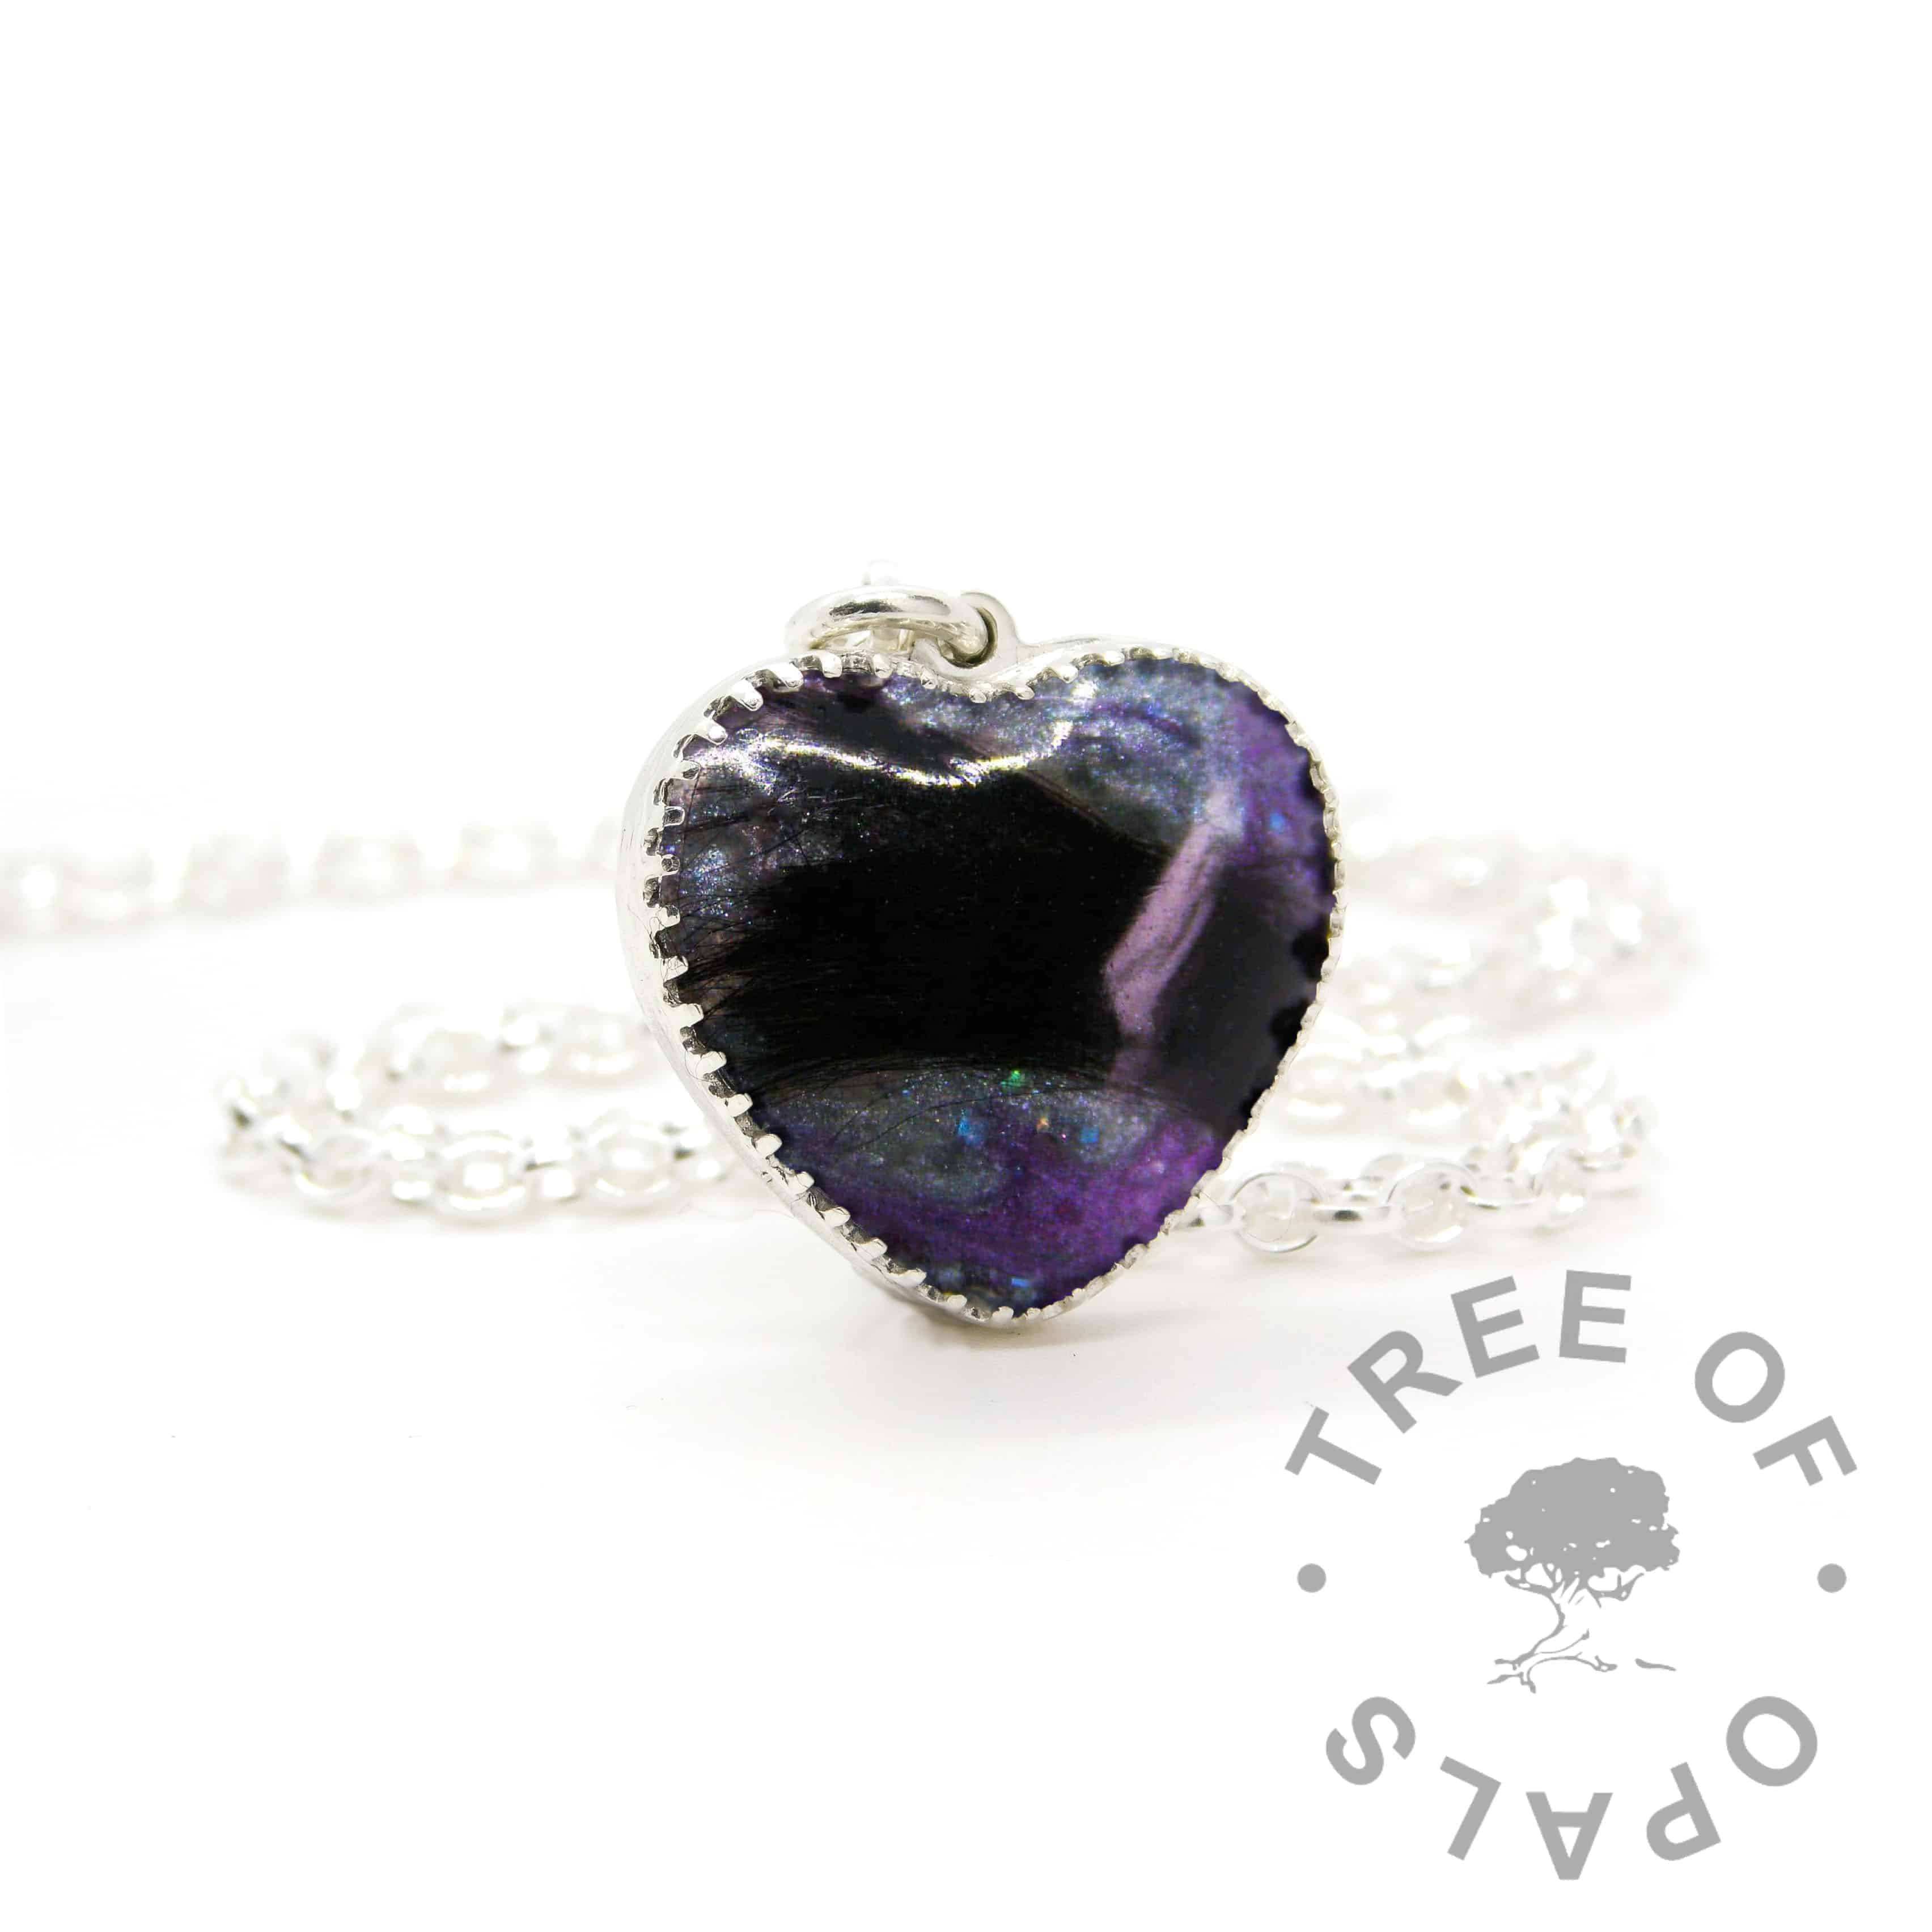 New style heart necklace setting with scalloped edge. Orchid purple and mermaid teal resin sparkle mix, lock of hair, shown with a medium classic chain upgrade (mockup of new setting)